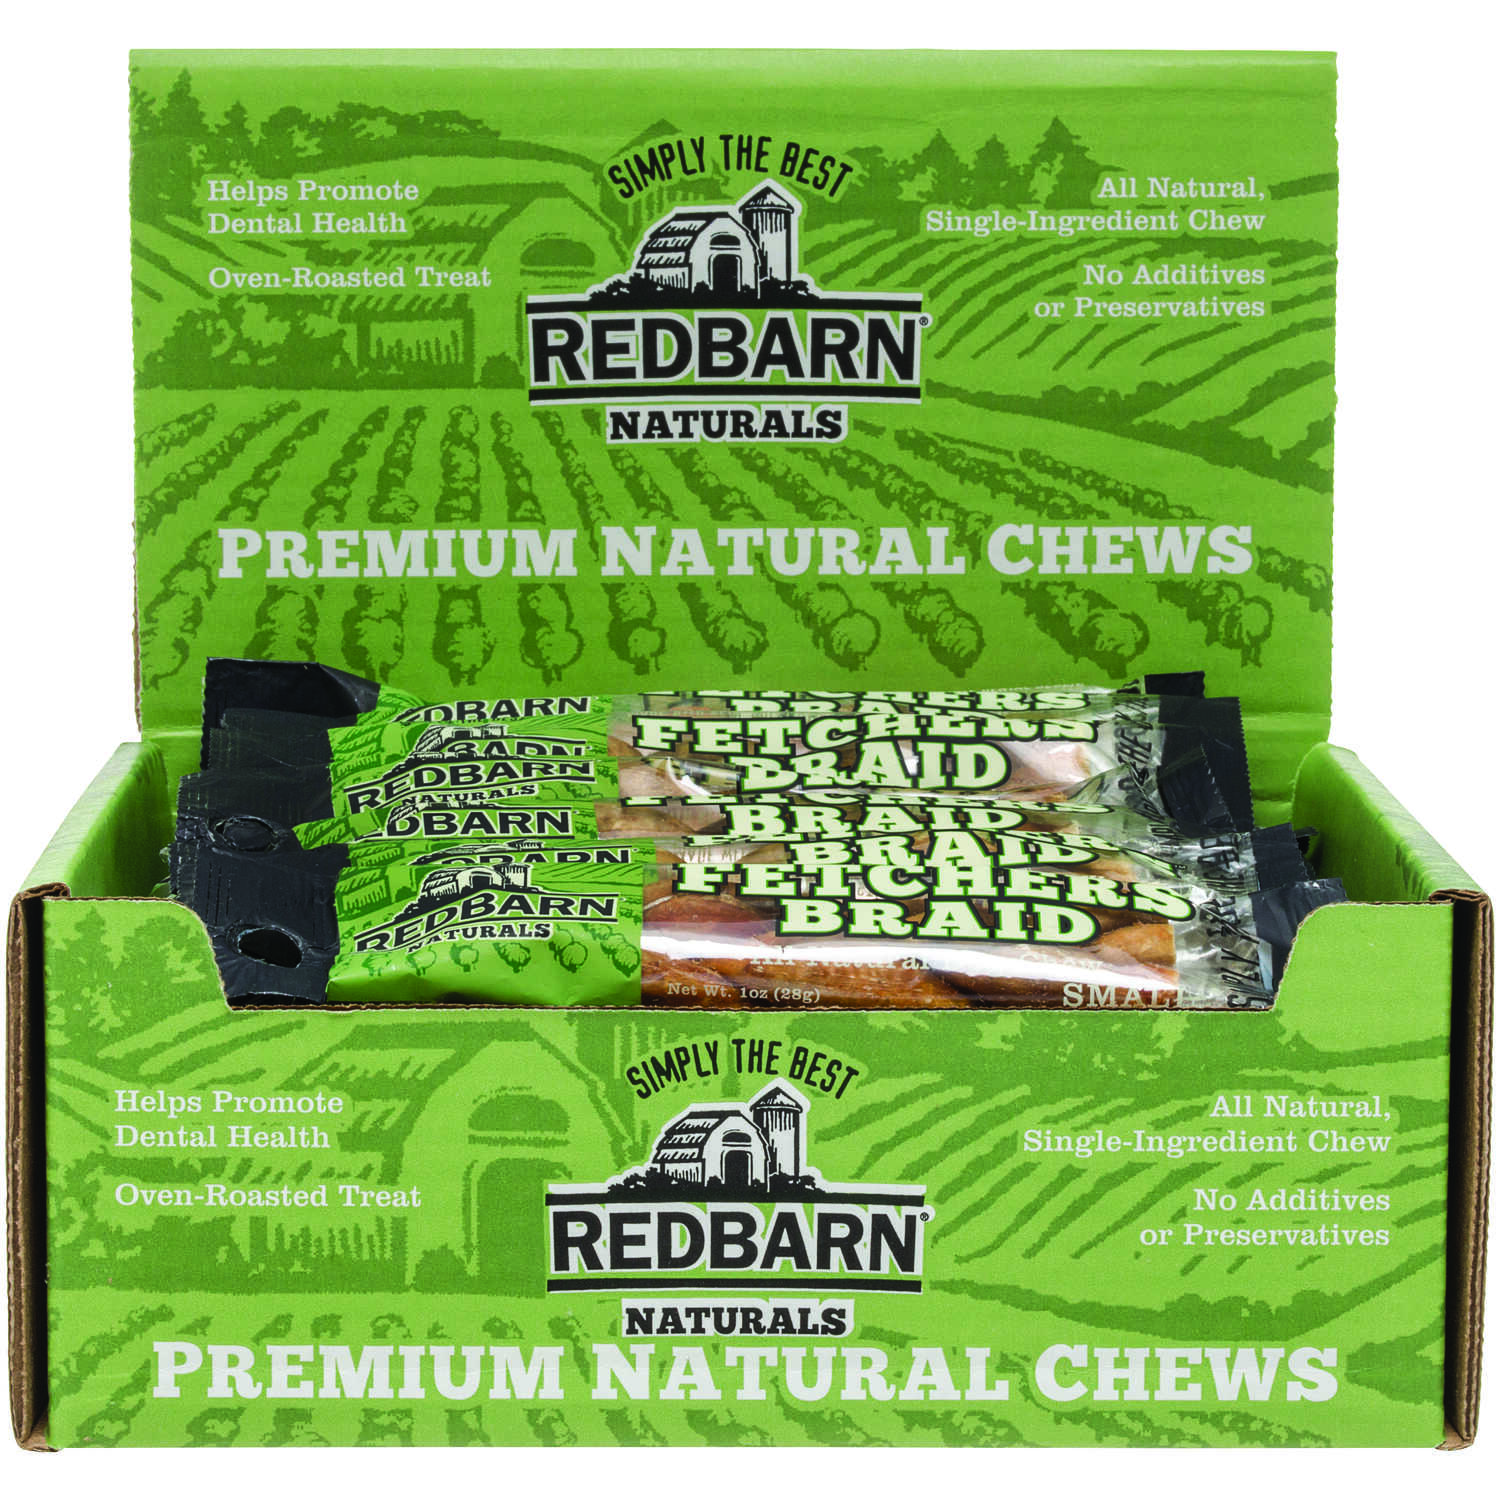 Redbarn  Naturals  Beef  Dog  Grain Free Chews  1 pk